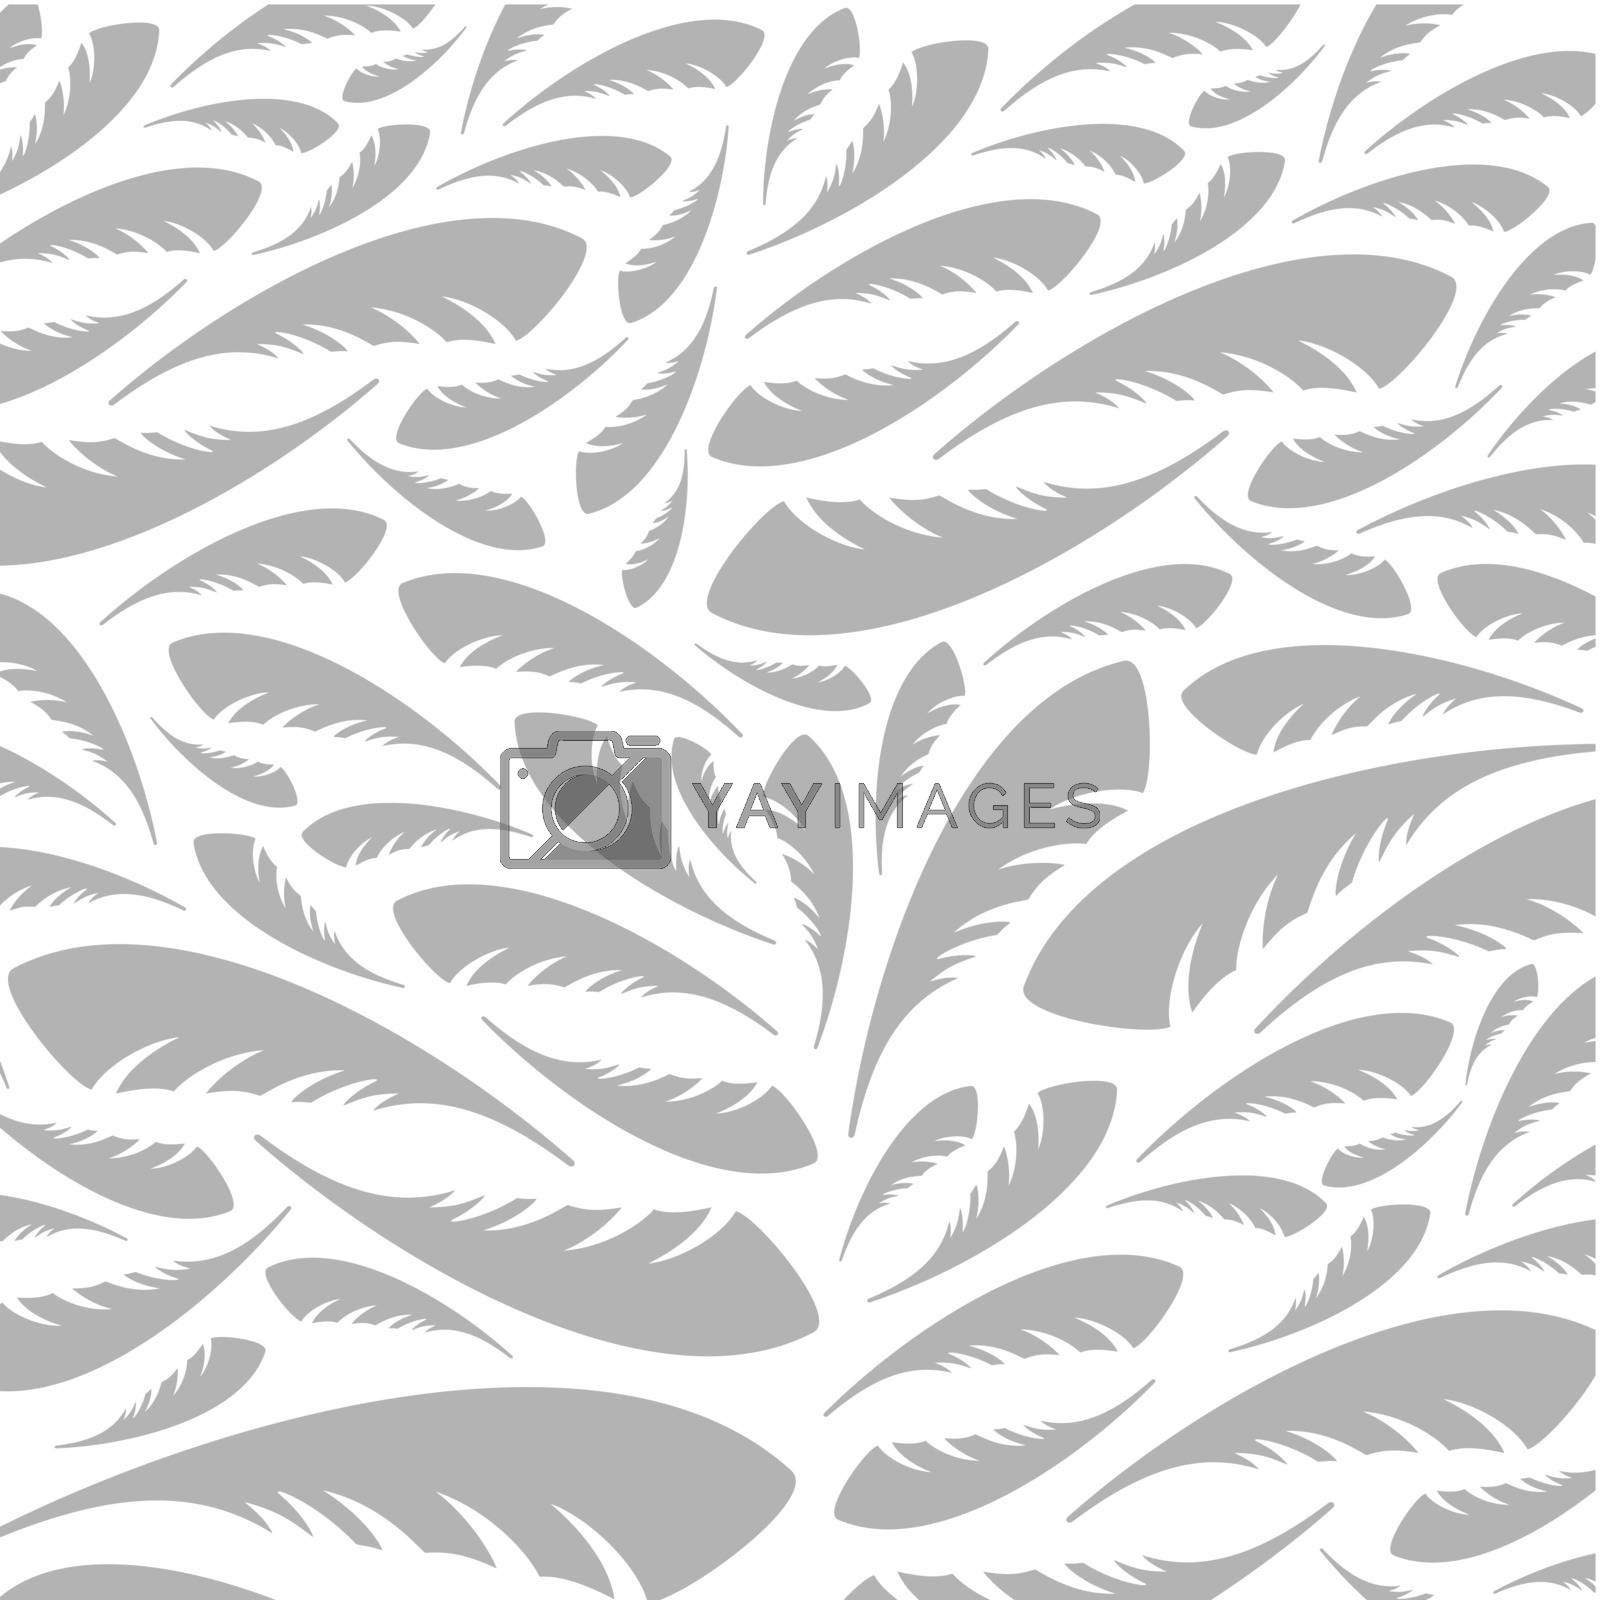 Background made of feathers. A vector illustration